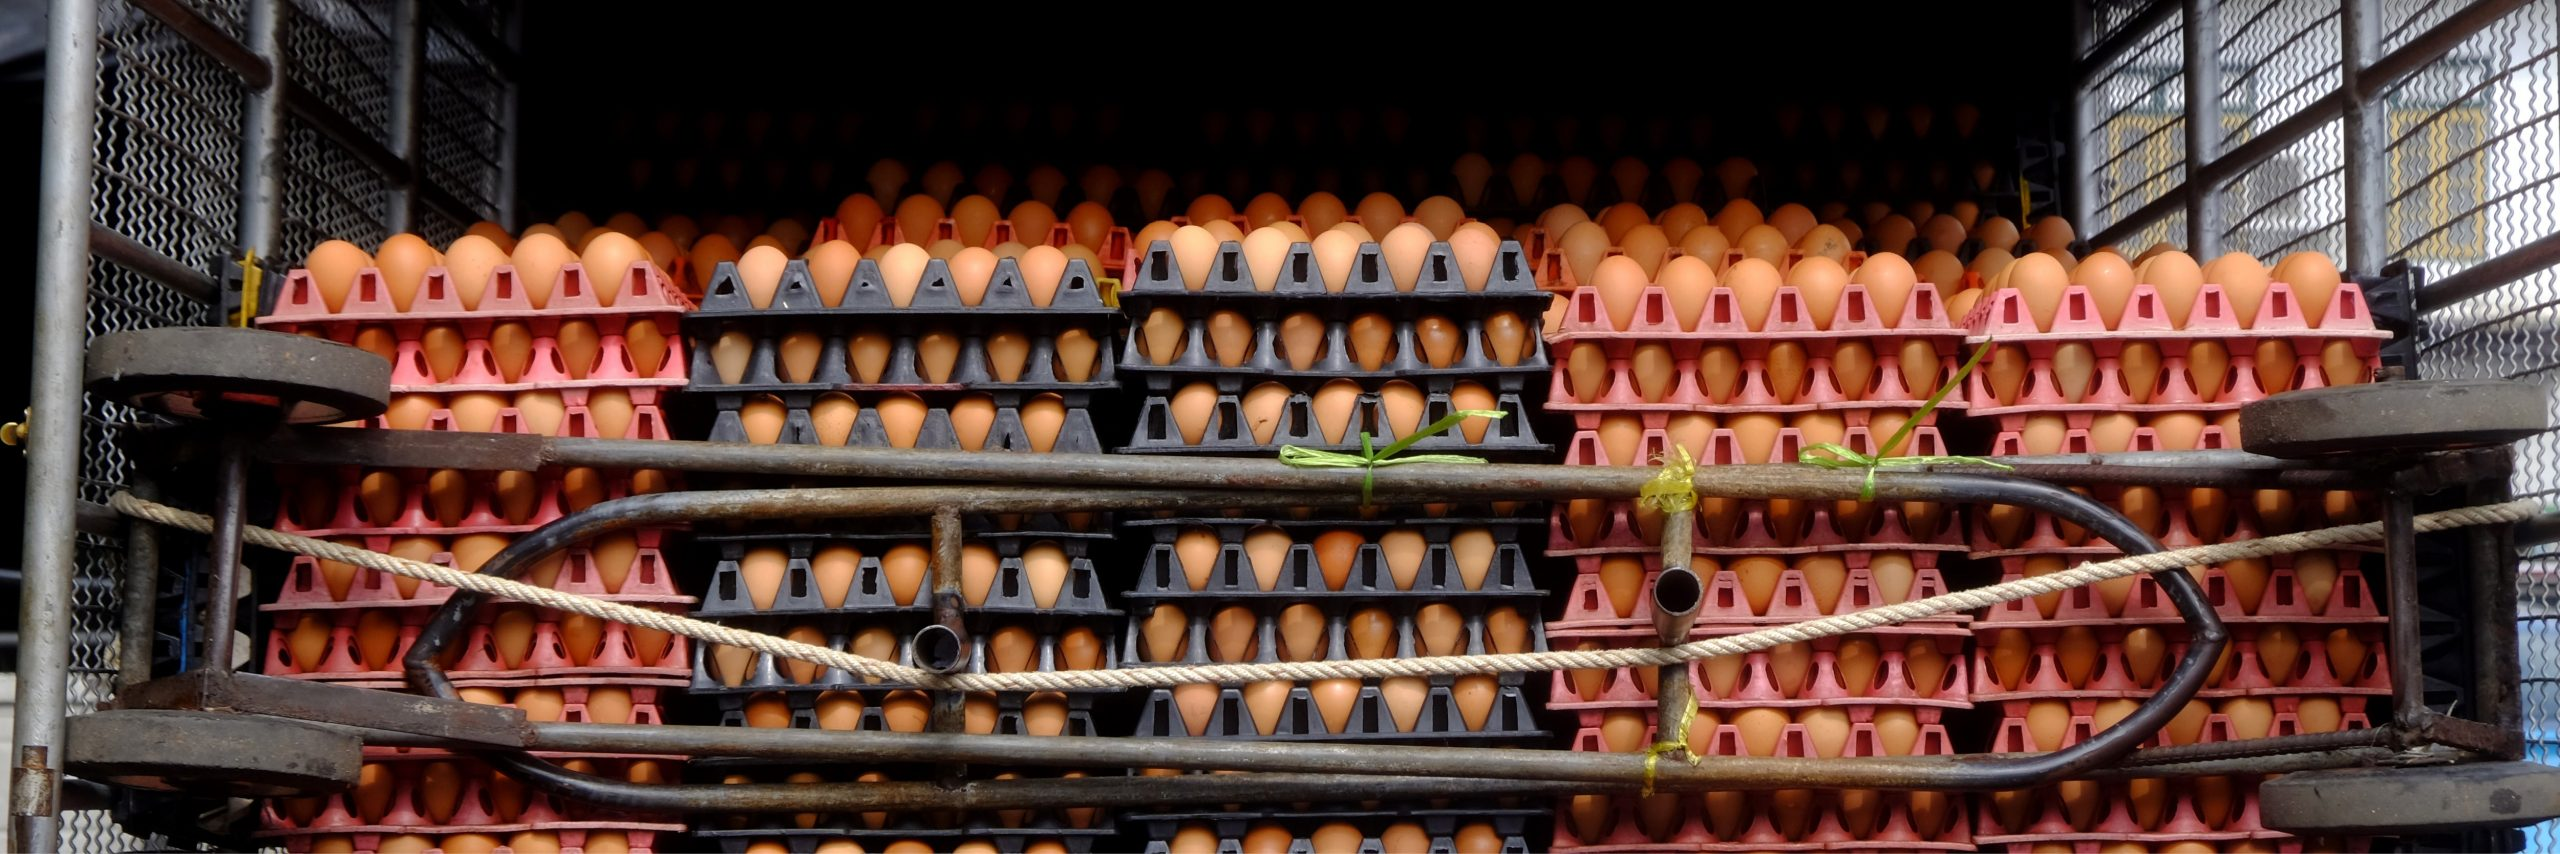 Eggs Remain a Protein Source in High Demand